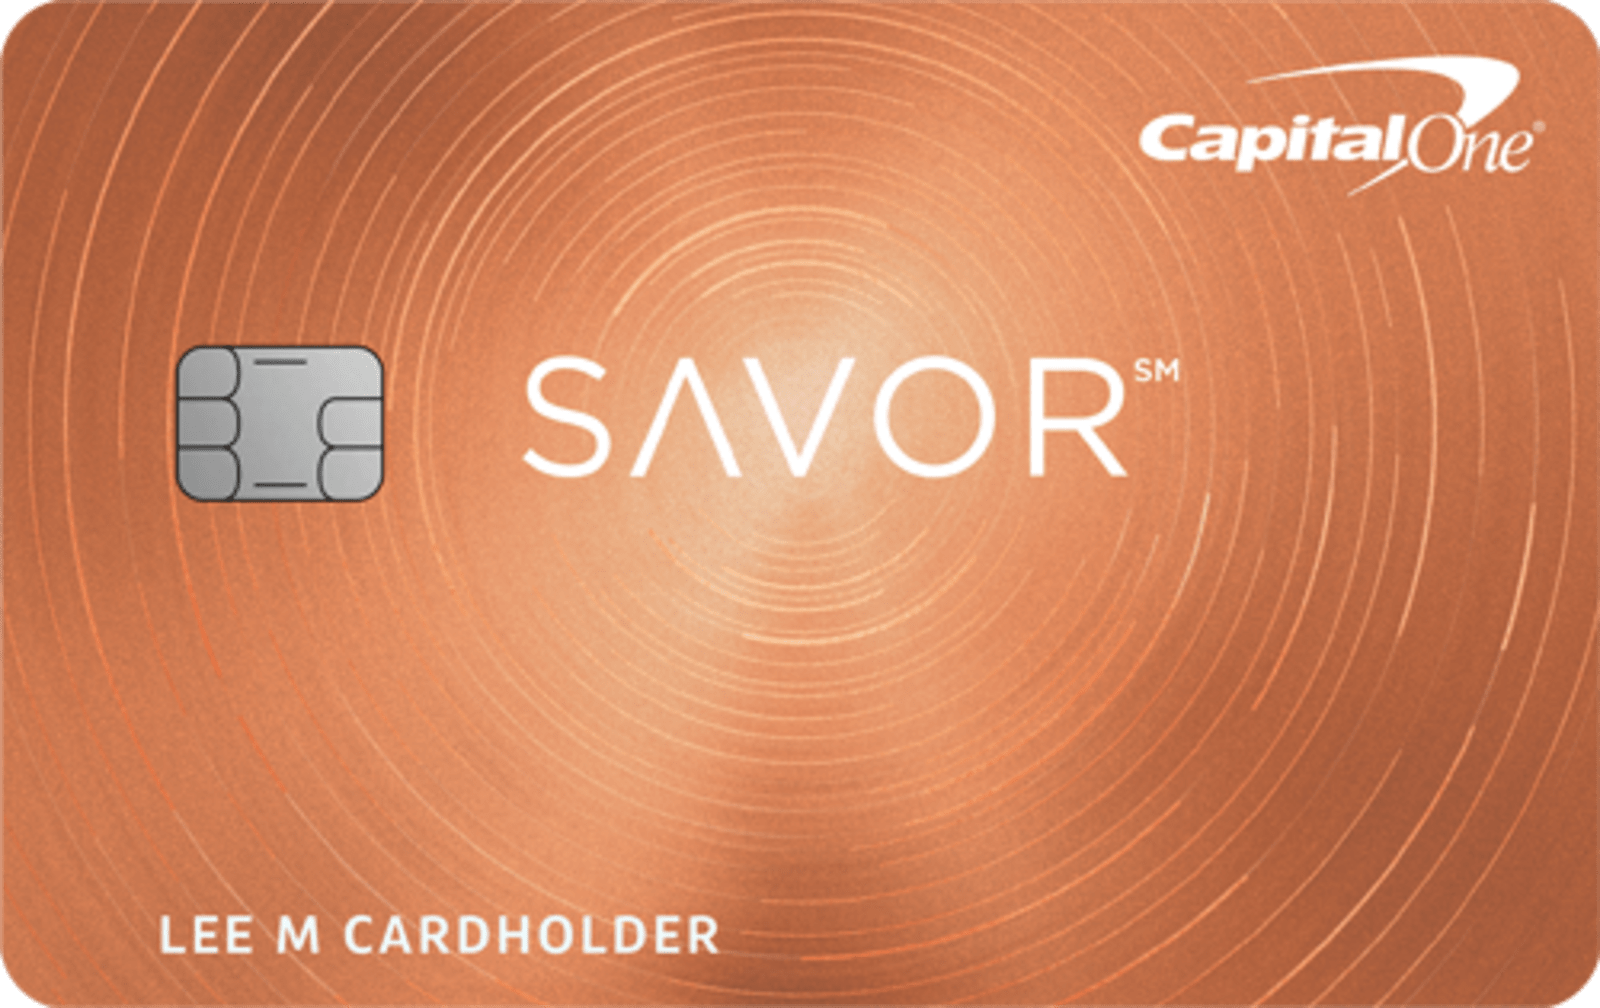 Capital One Motorcycle Loans >> Capital One Savor Cash Rewards Credit Card Should You Apply